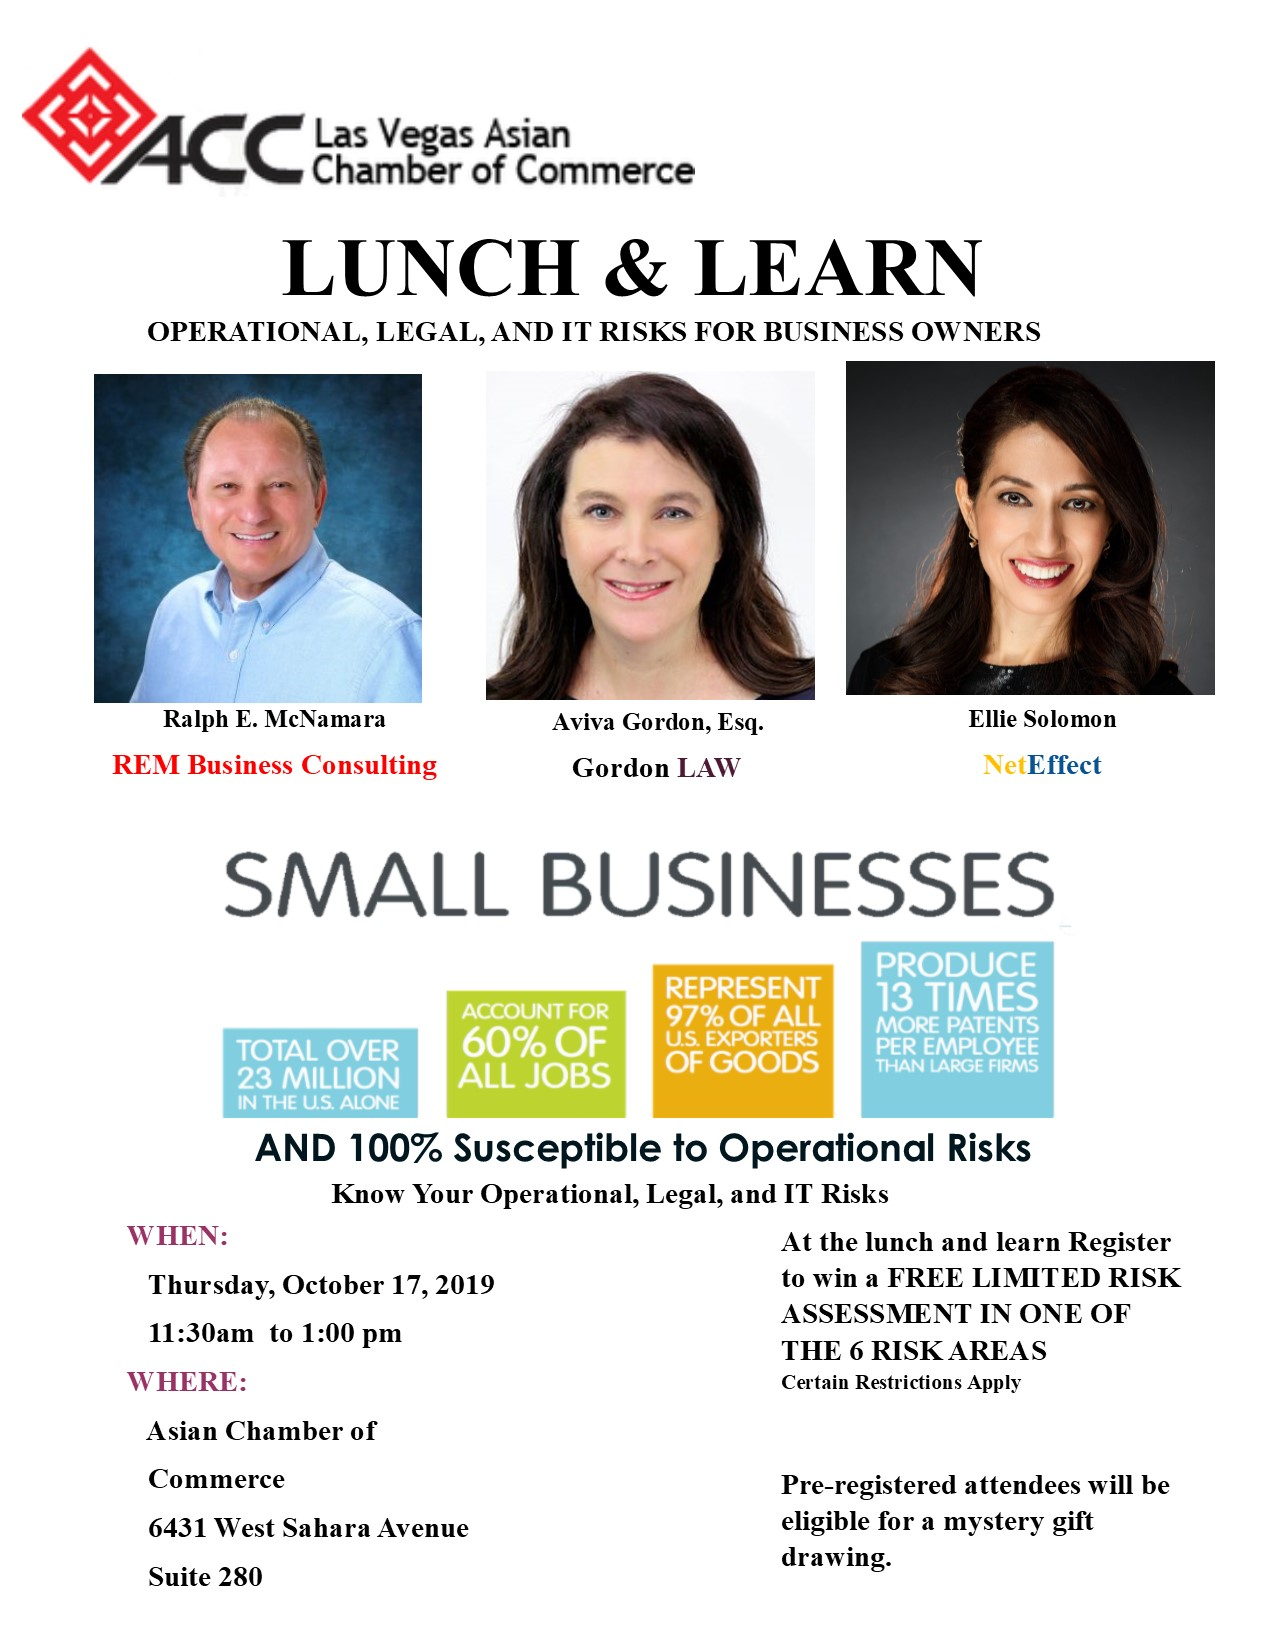 Lunch & Learn @ Asian Chamber of Commerce